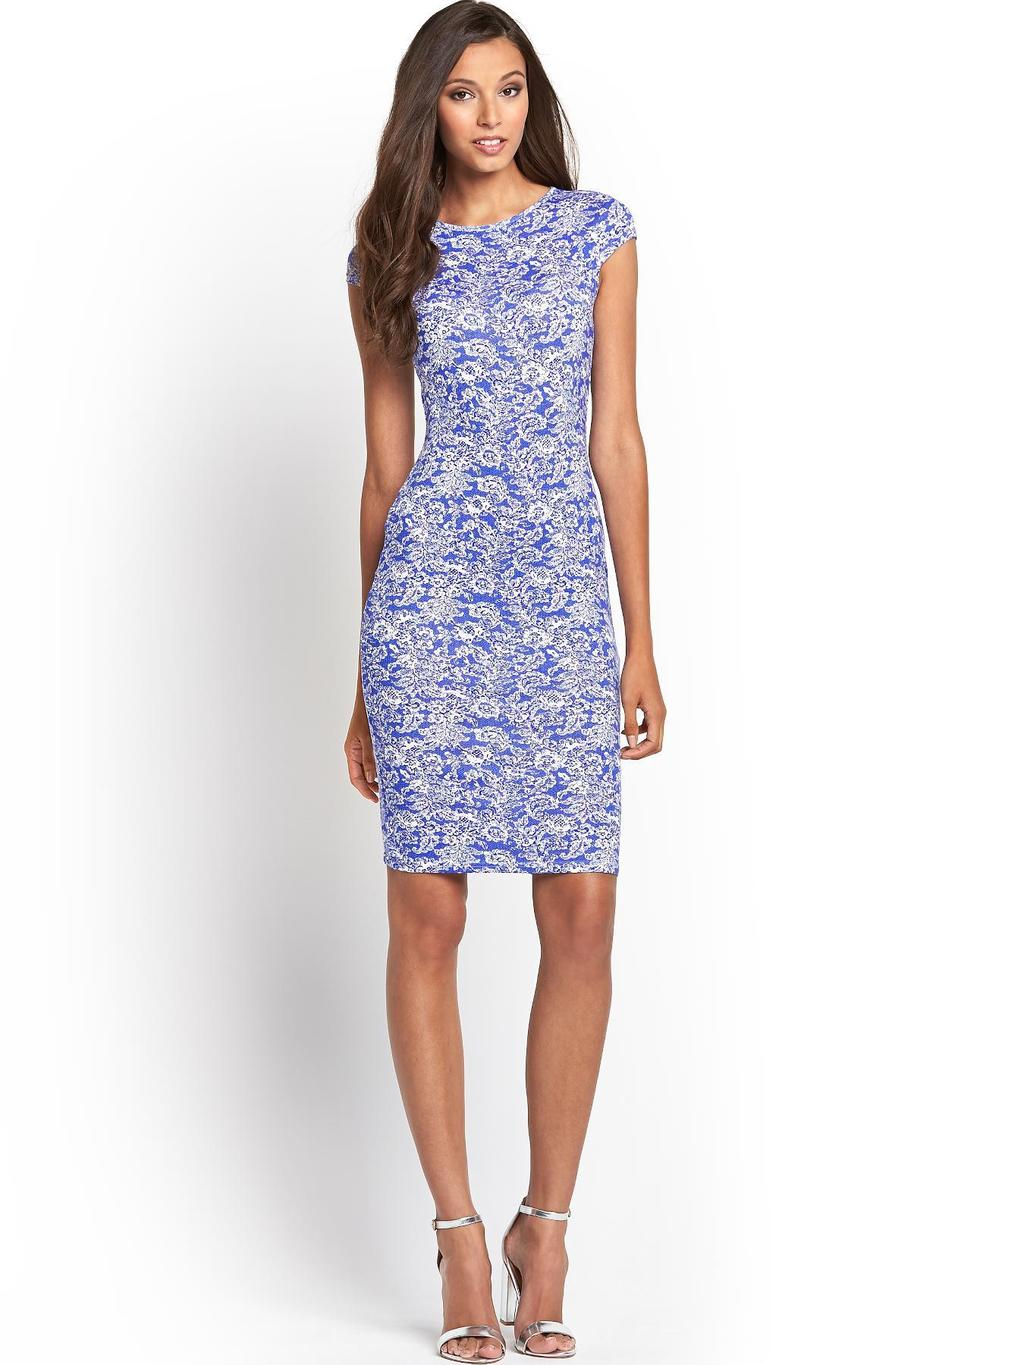 Lace Print Midi Dress, Blue - neckline: round neck; sleeve style: capped; fit: tight; style: bodycon; secondary colour: white; predominant colour: diva blue; occasions: evening, occasion; length: just above the knee; fibres: viscose/rayon - stretch; sleeve length: short sleeve; texture group: jersey - clingy; pattern type: fabric; pattern size: standard; pattern: patterned/print; season: s/s 2014